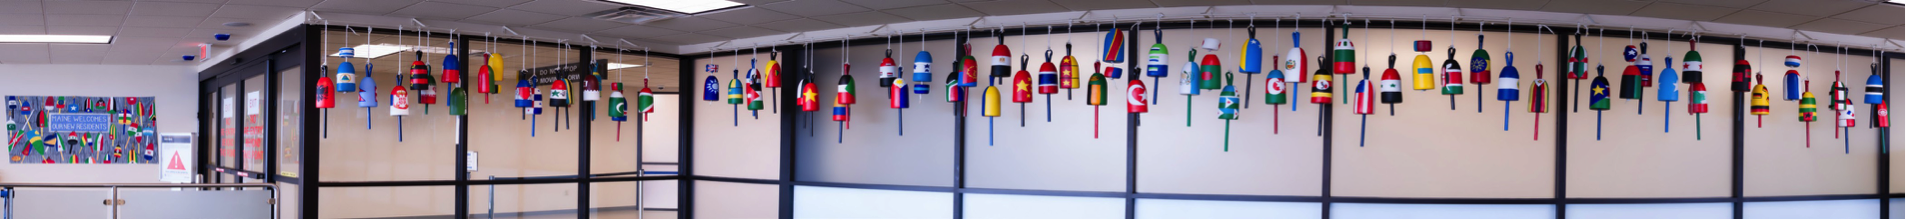 Buoys at Portland Jetport panorama